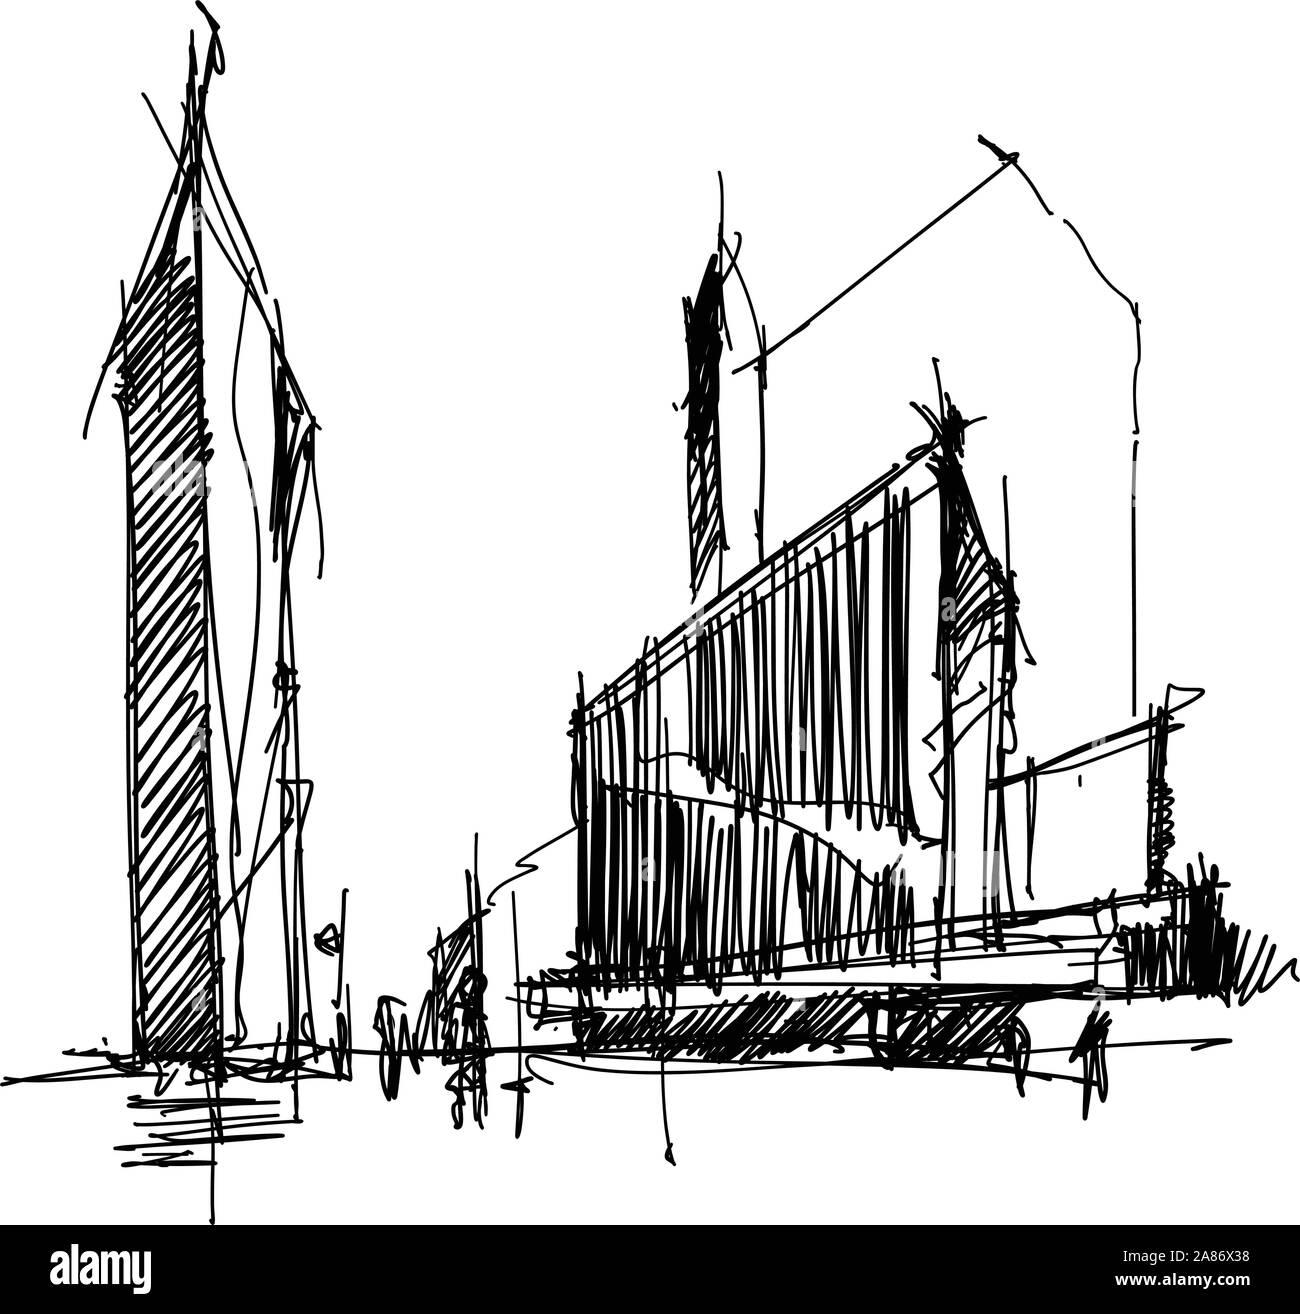 hand drawn architectural sketch of a modern abstract architecture Stock Vector